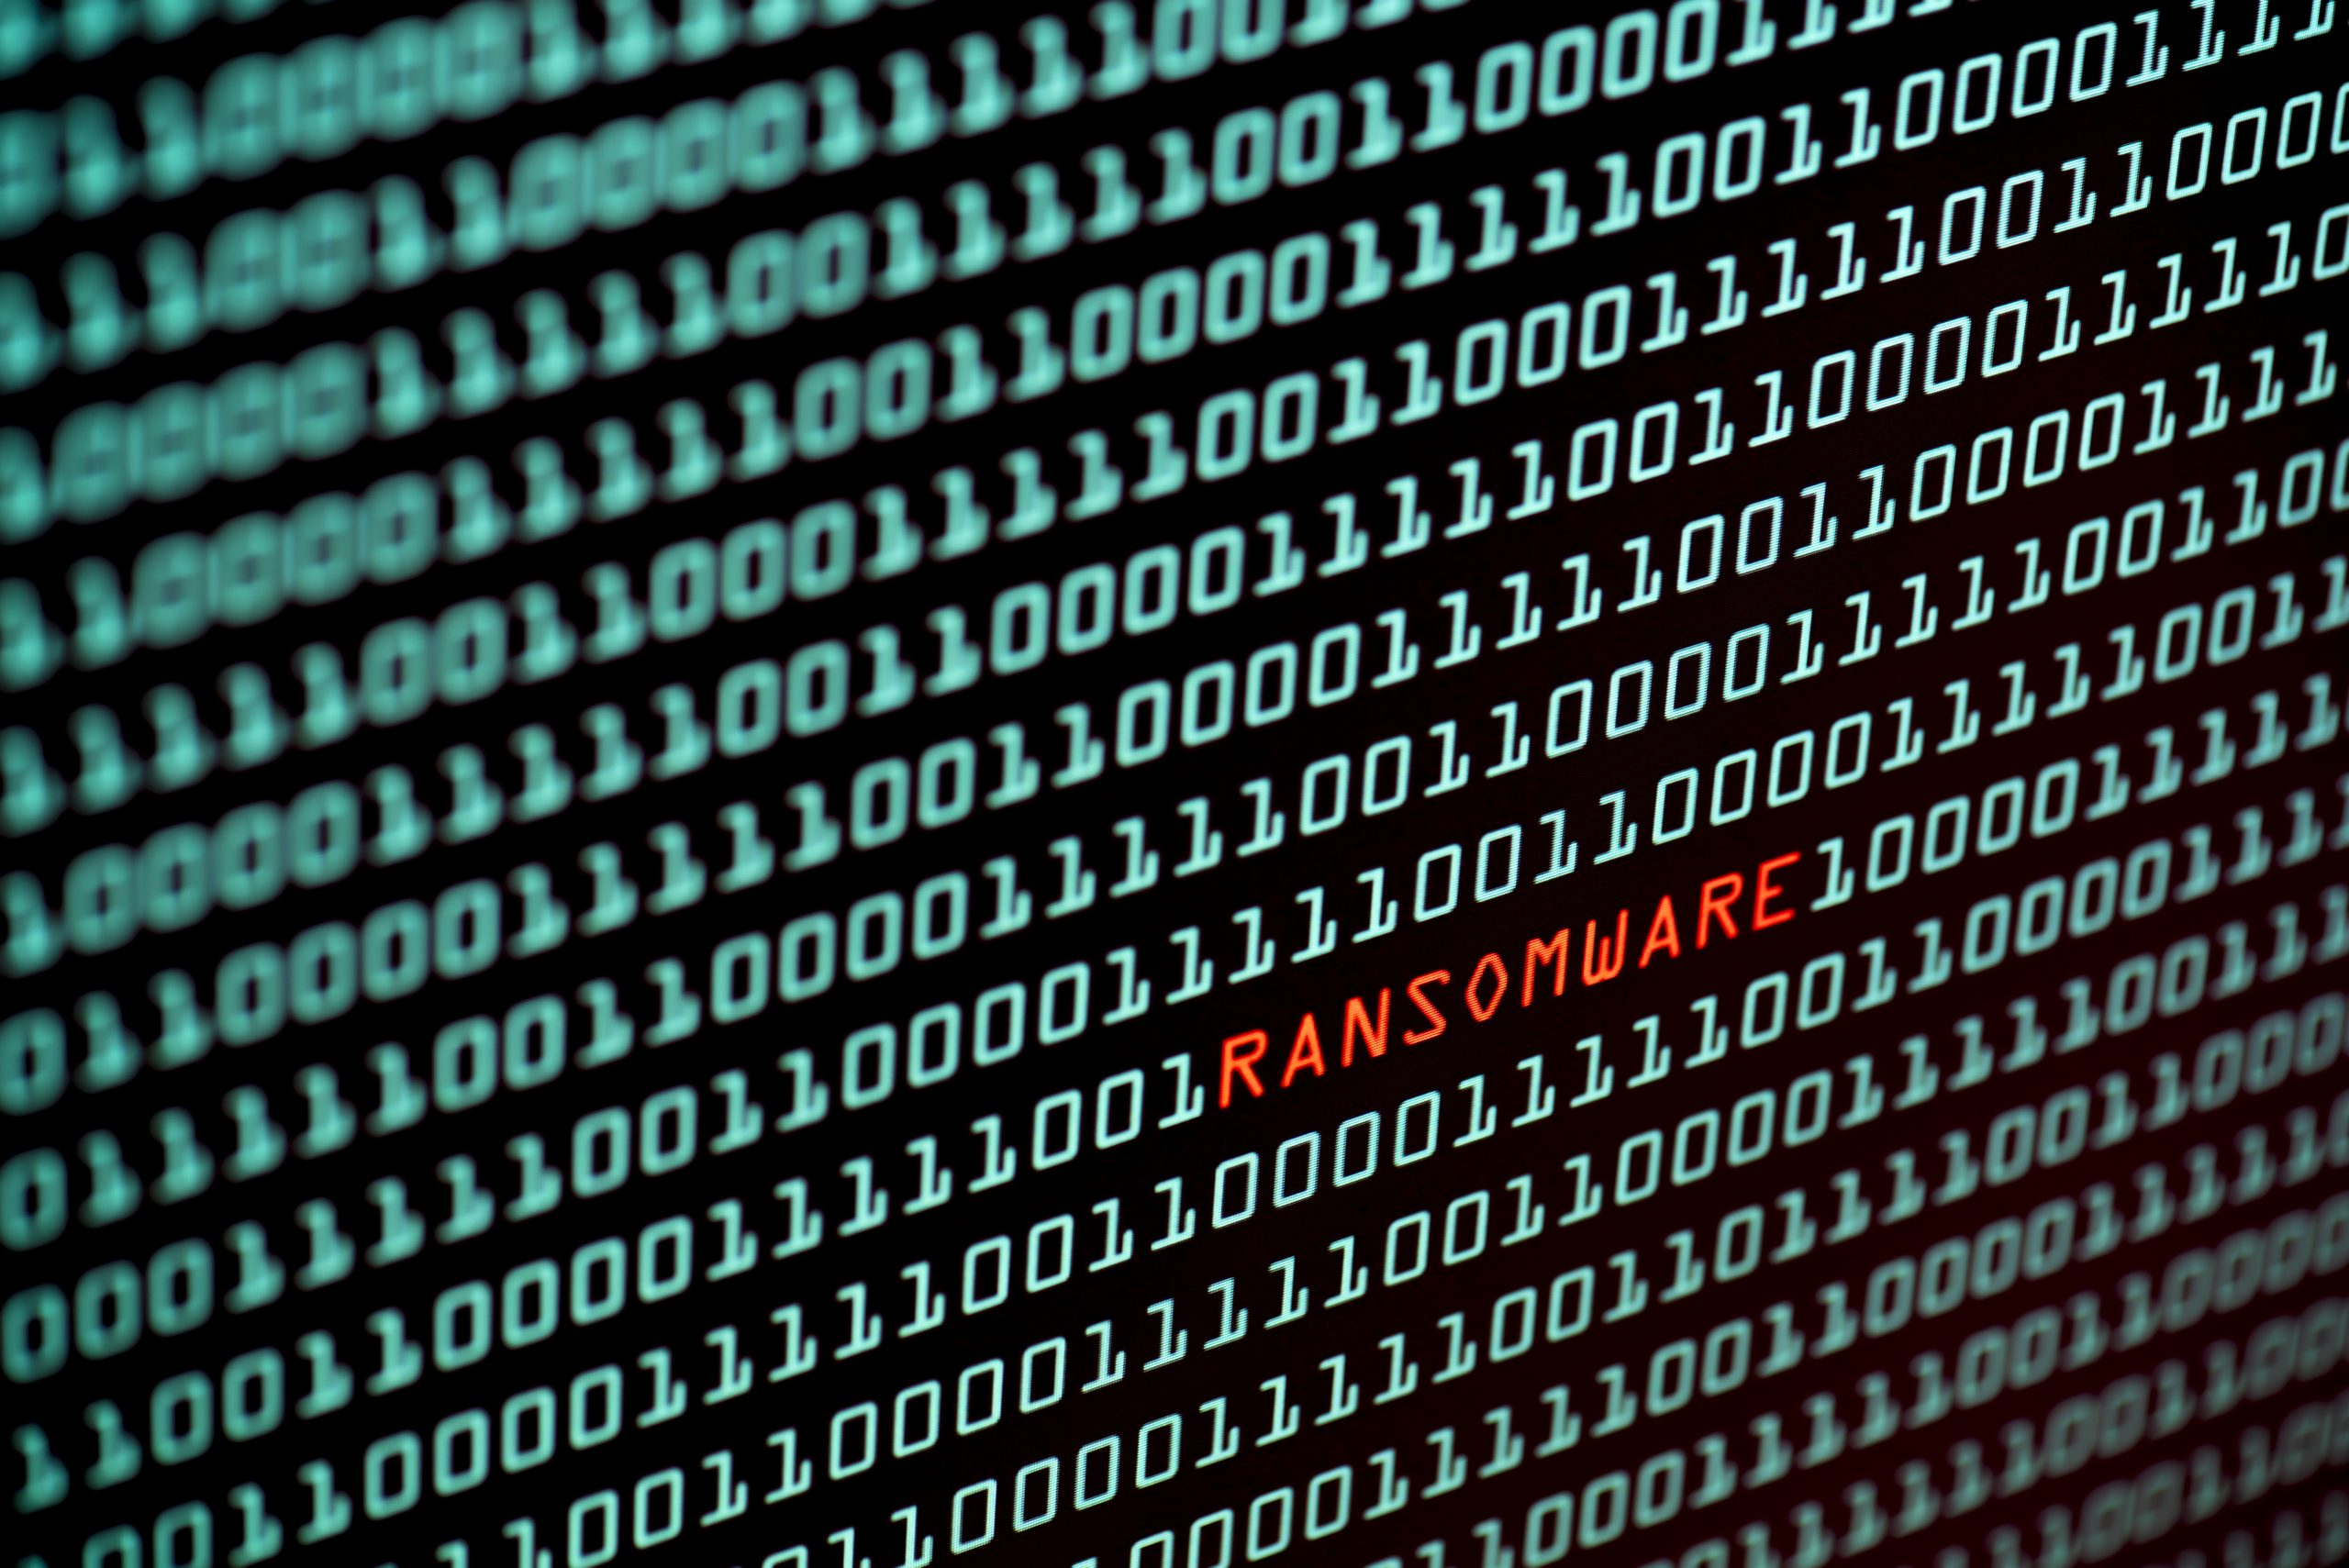 Ransomware Are You Protected?